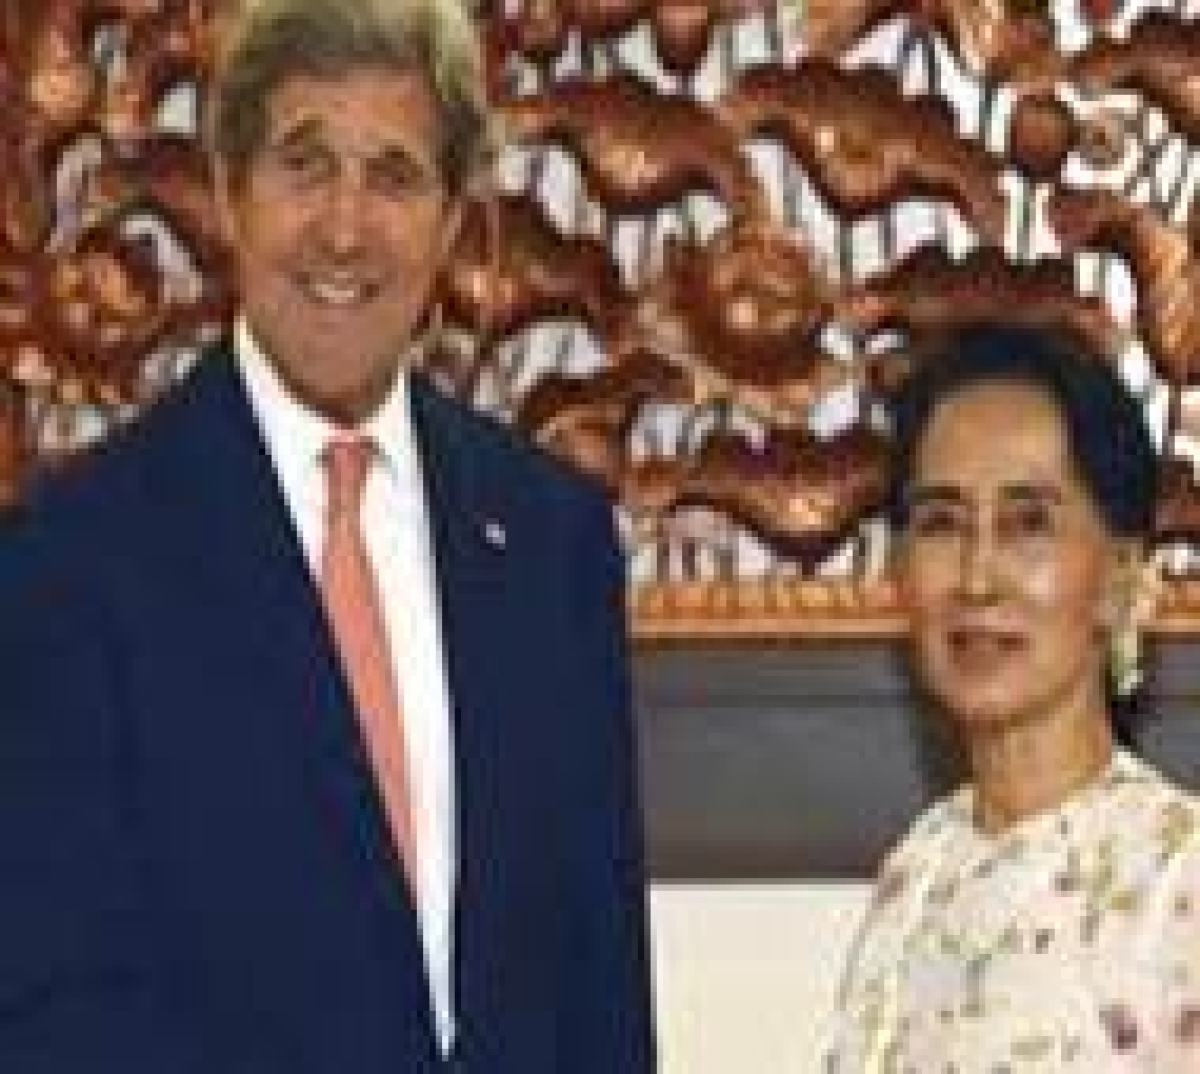 Kerry hails 'remarkable' Myanmar changes after Suu Kyi talks